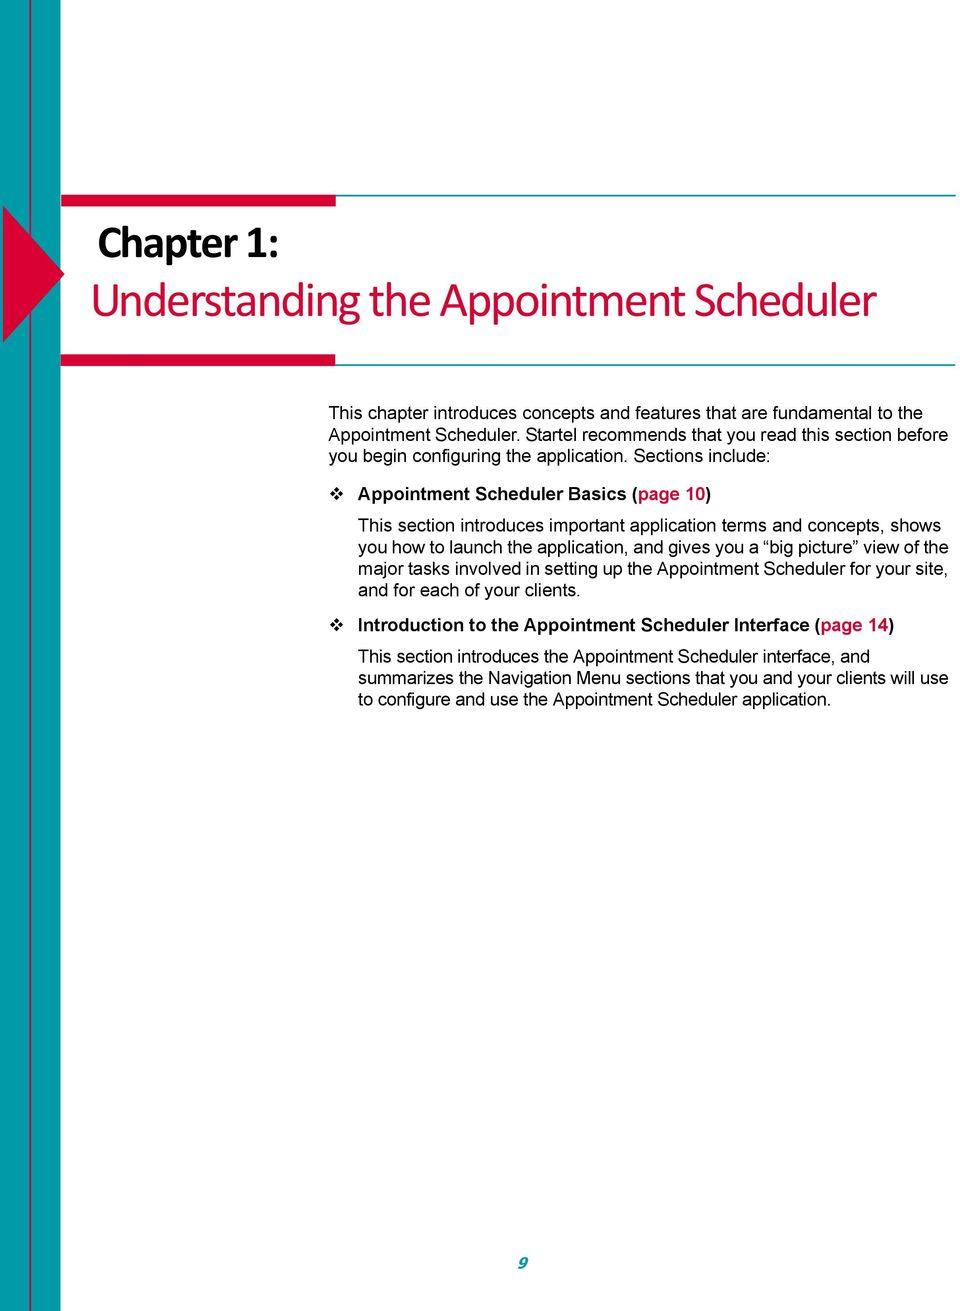 Sections include: Appointment Scheduler Basics (page 10) This section introduces important application terms and concepts, shows you how to launch the application, and gives you a big picture view of